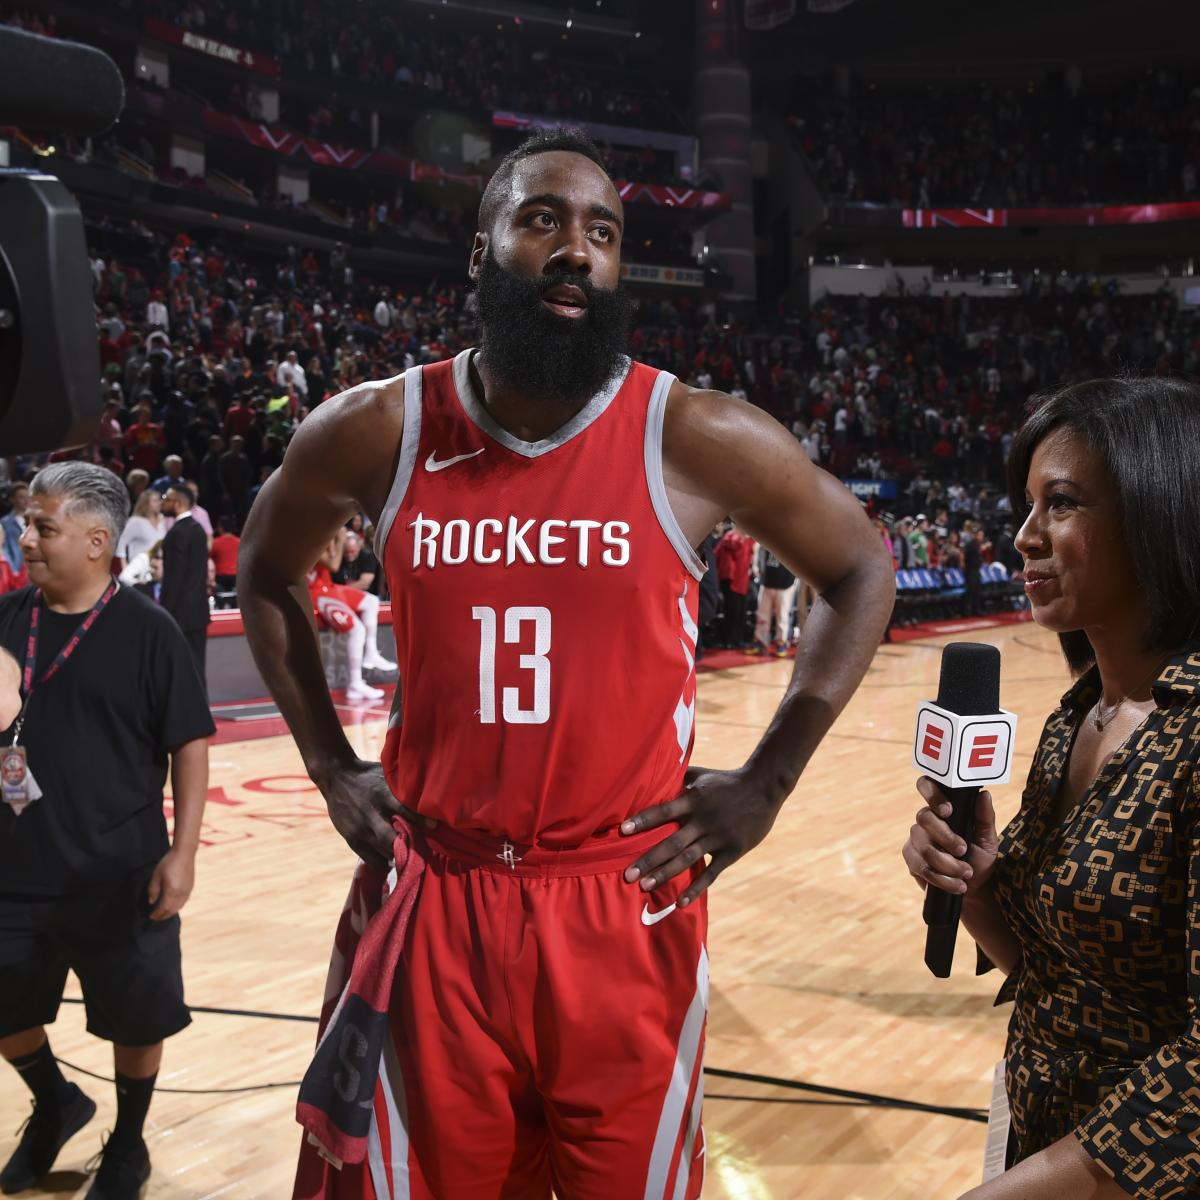 Houston Rockets Vs Okc: Houston Rockets Vs. Oklahoma City Thunder: Odds, Analysis